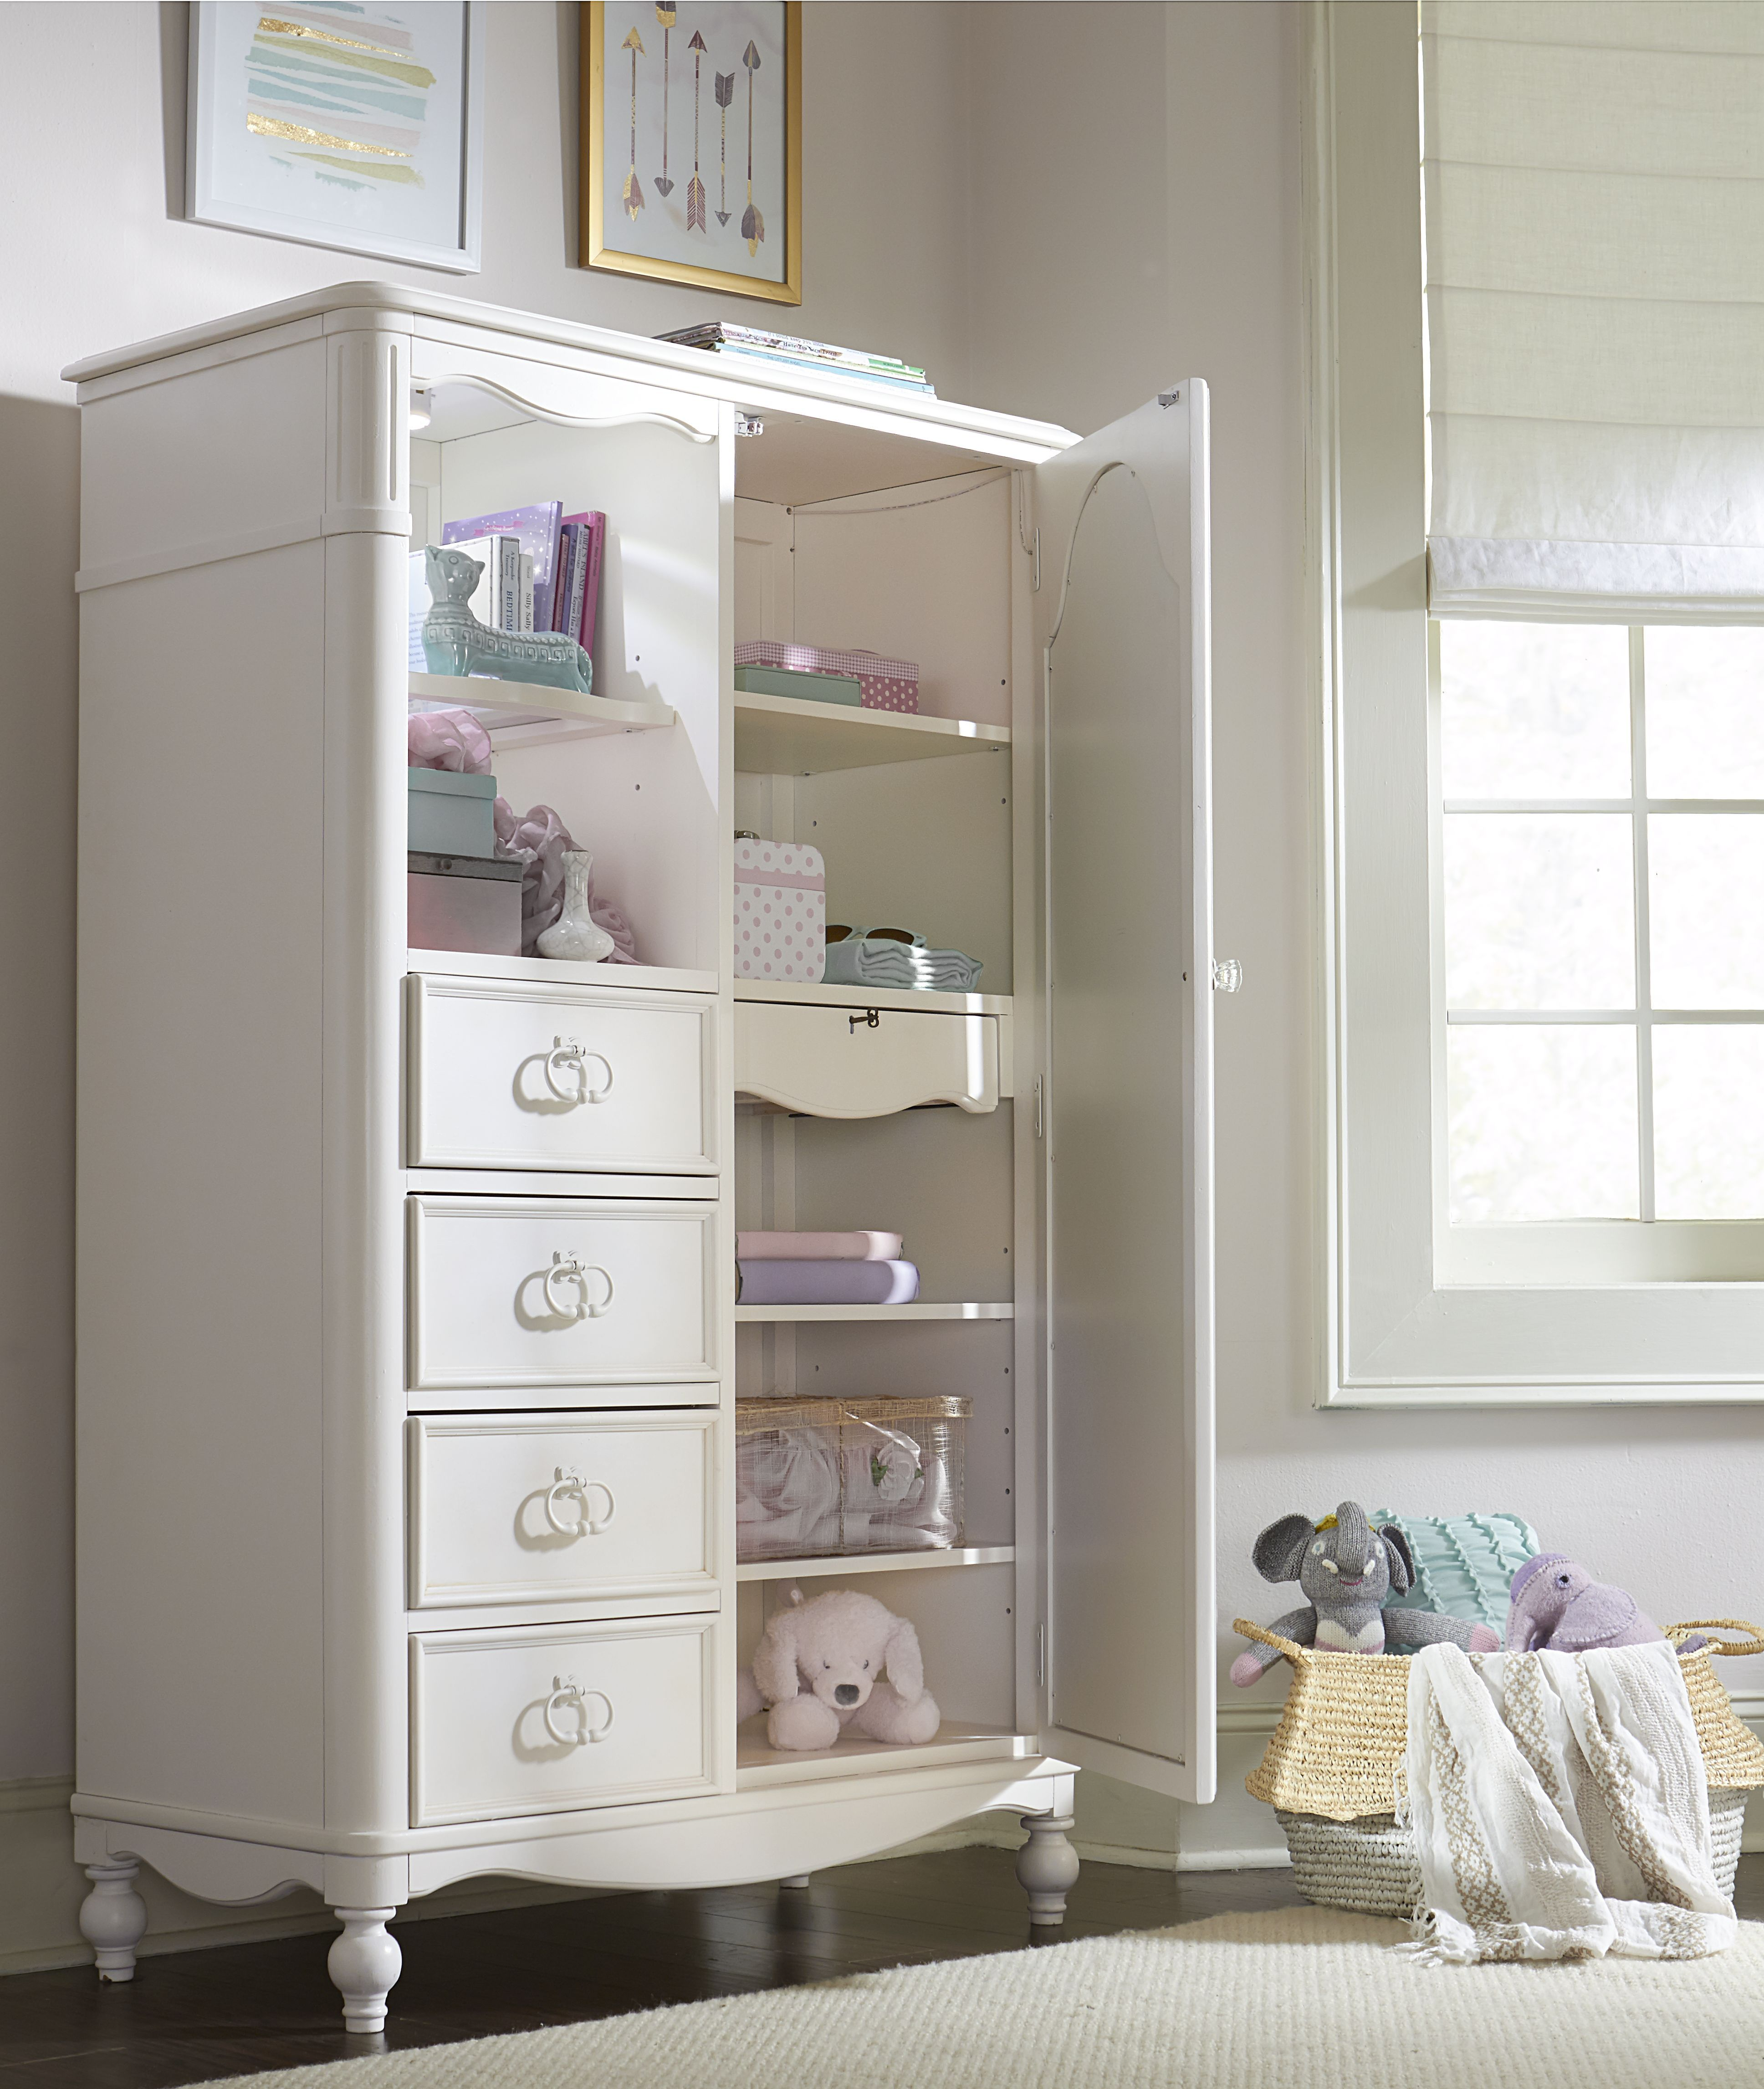 Charmant Mirrored Door Chest Open   The Harmony Collection By Wendy Bellissimo    Legacy Classic Kids #kids #kidsfurniture #homedecor #WendyBellissimo # ...